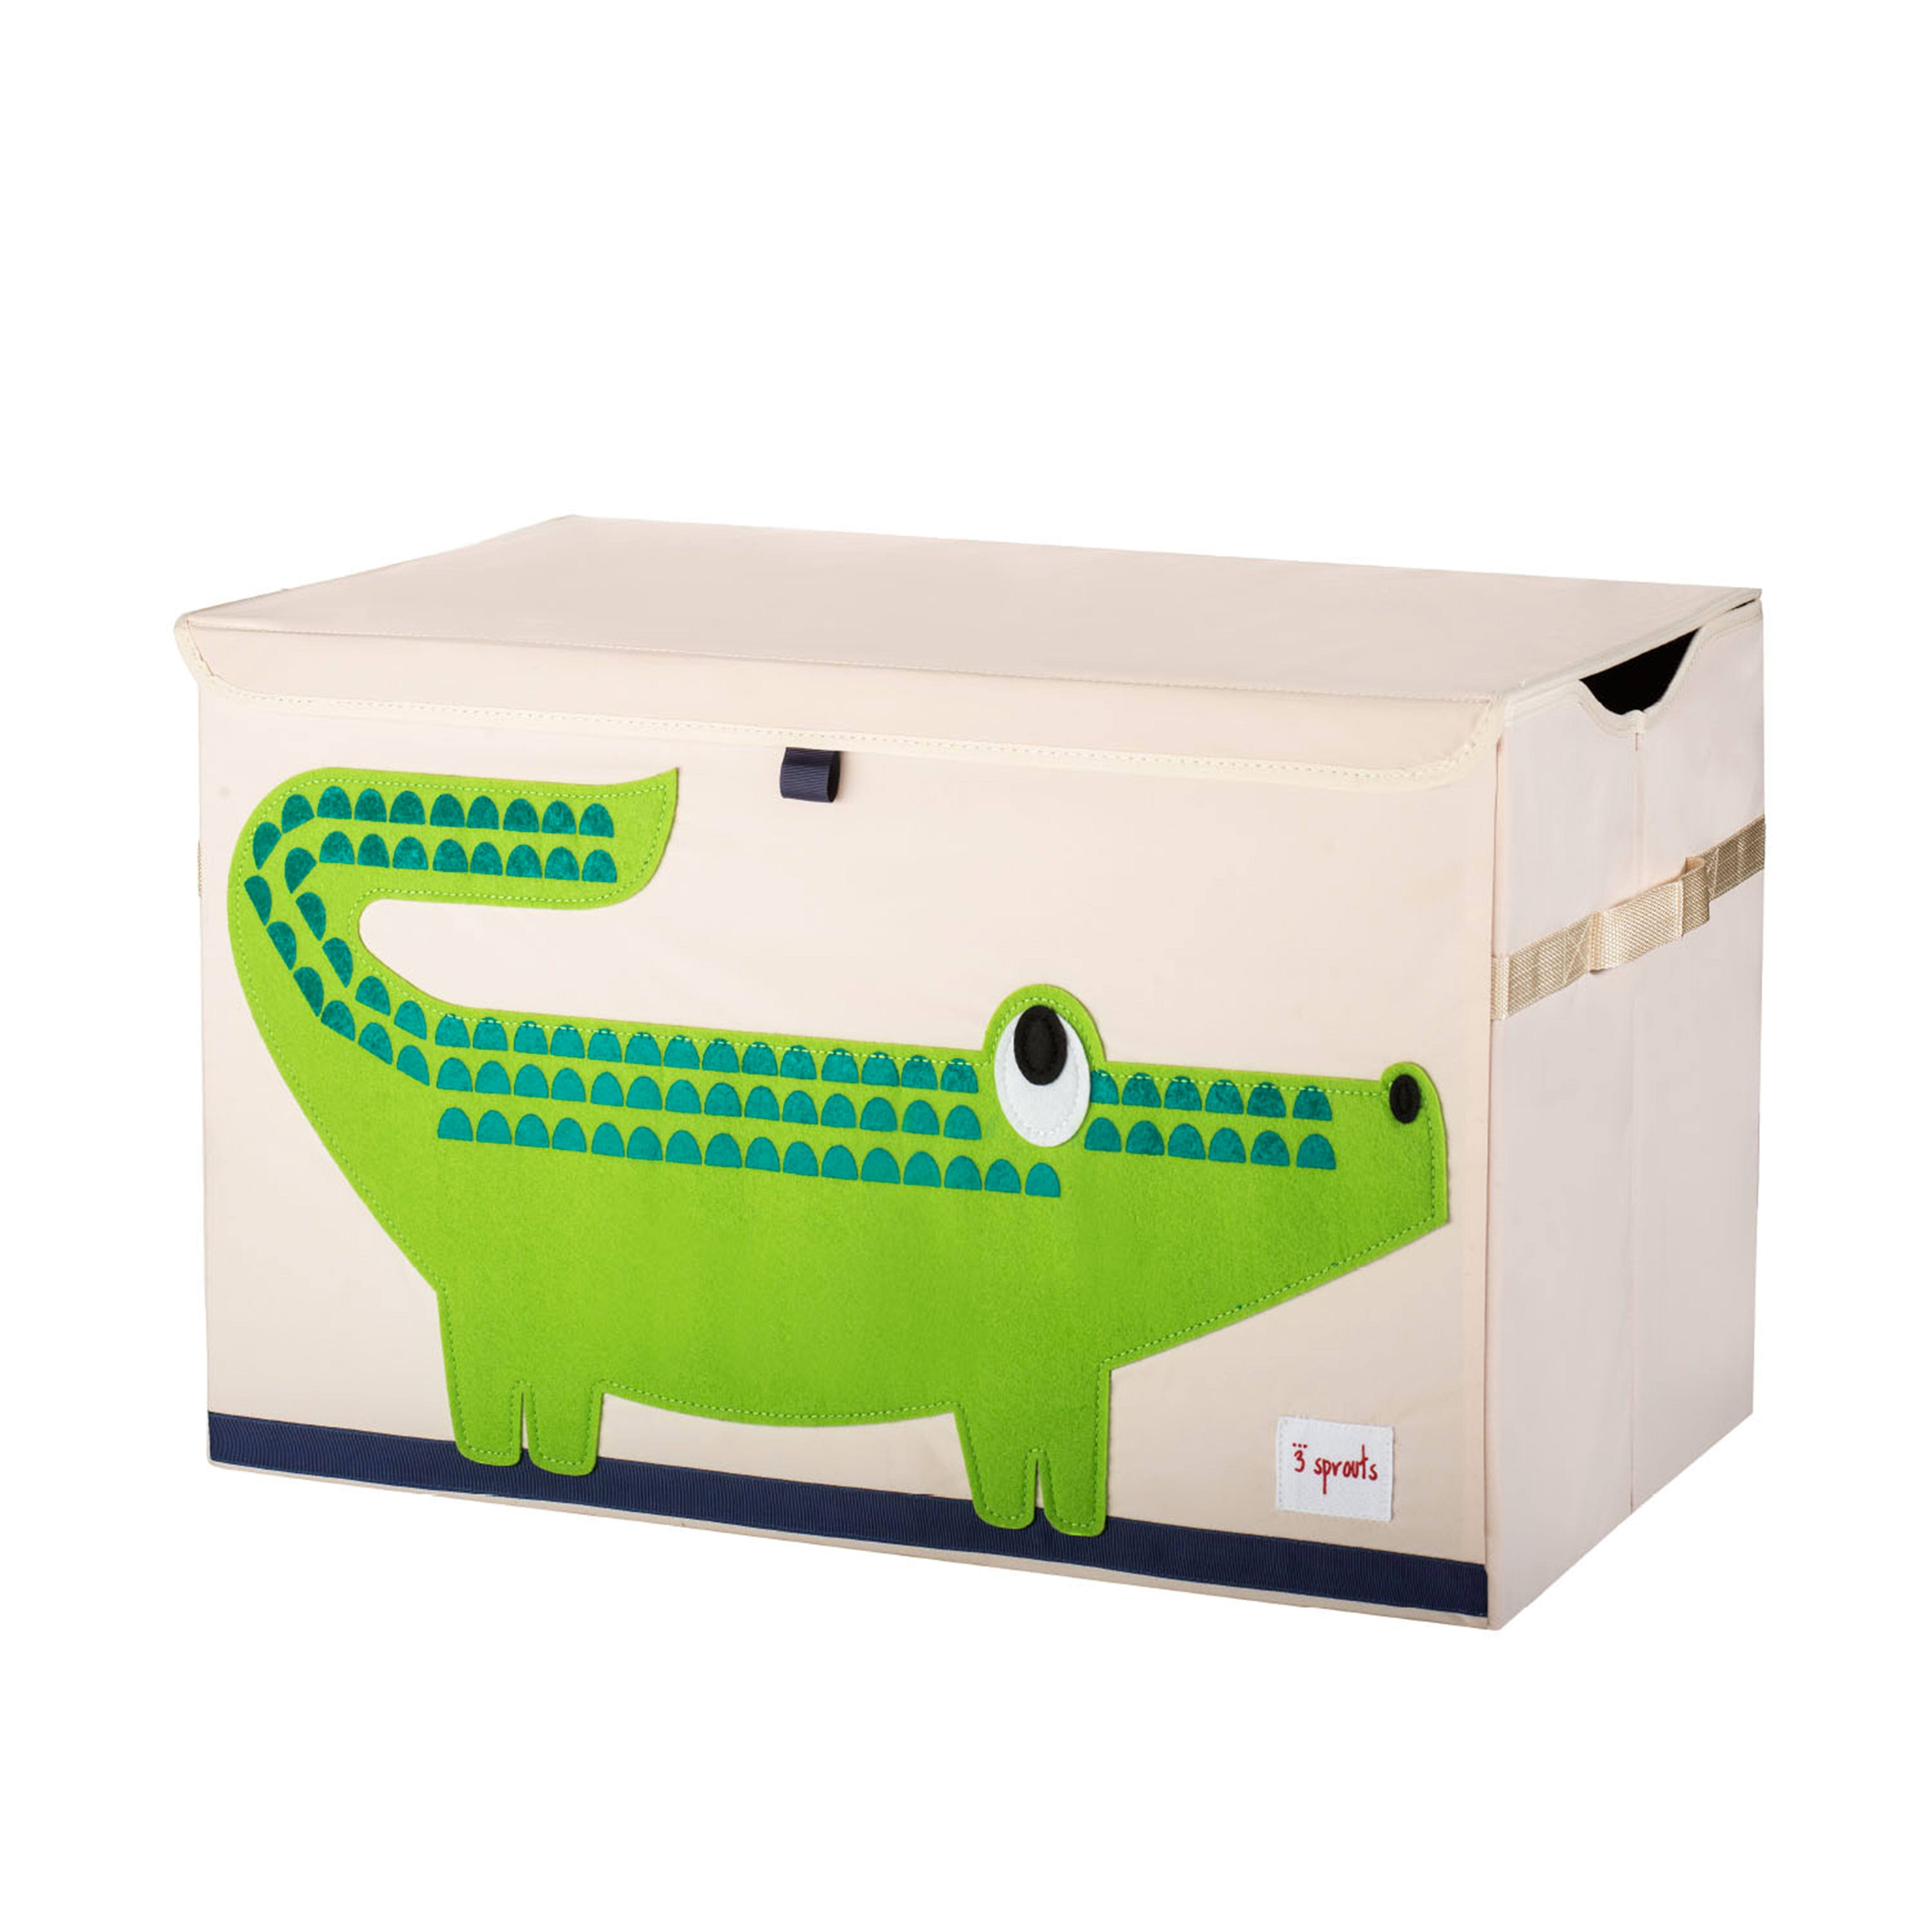 3 Sprouts - Toy Chest - Green Crocodile